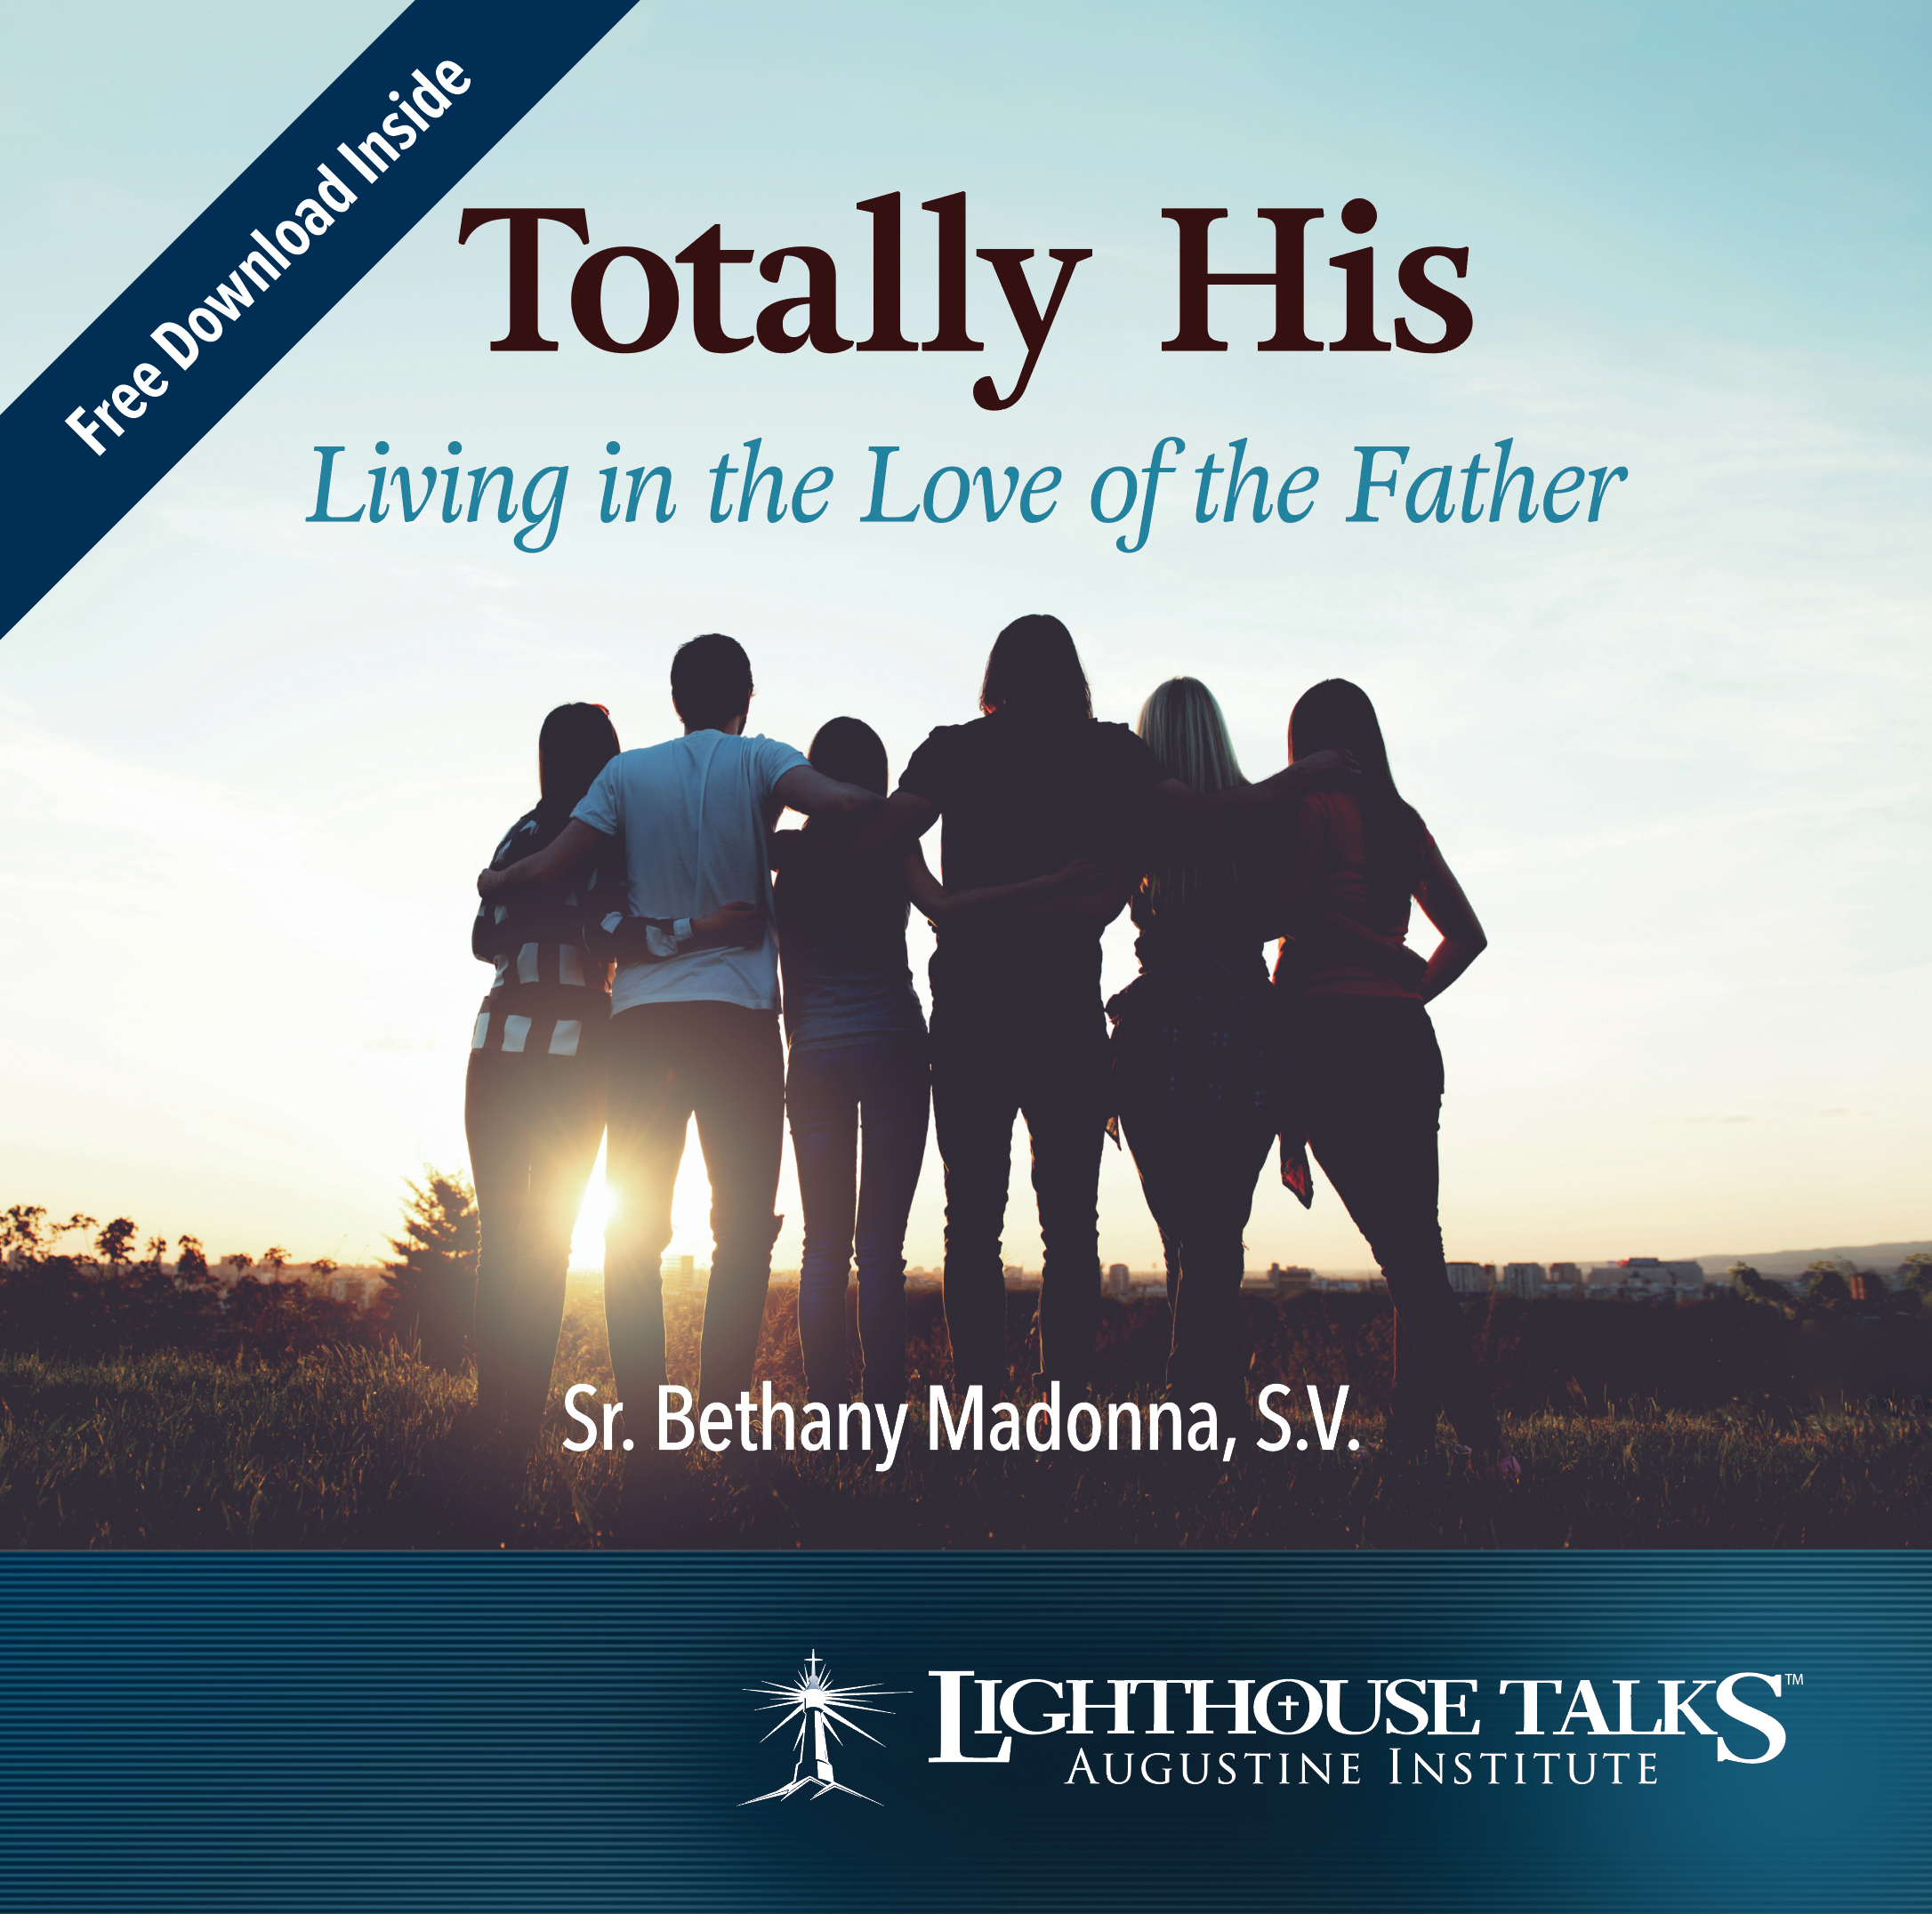 Totally His: Living in the Love of the Father